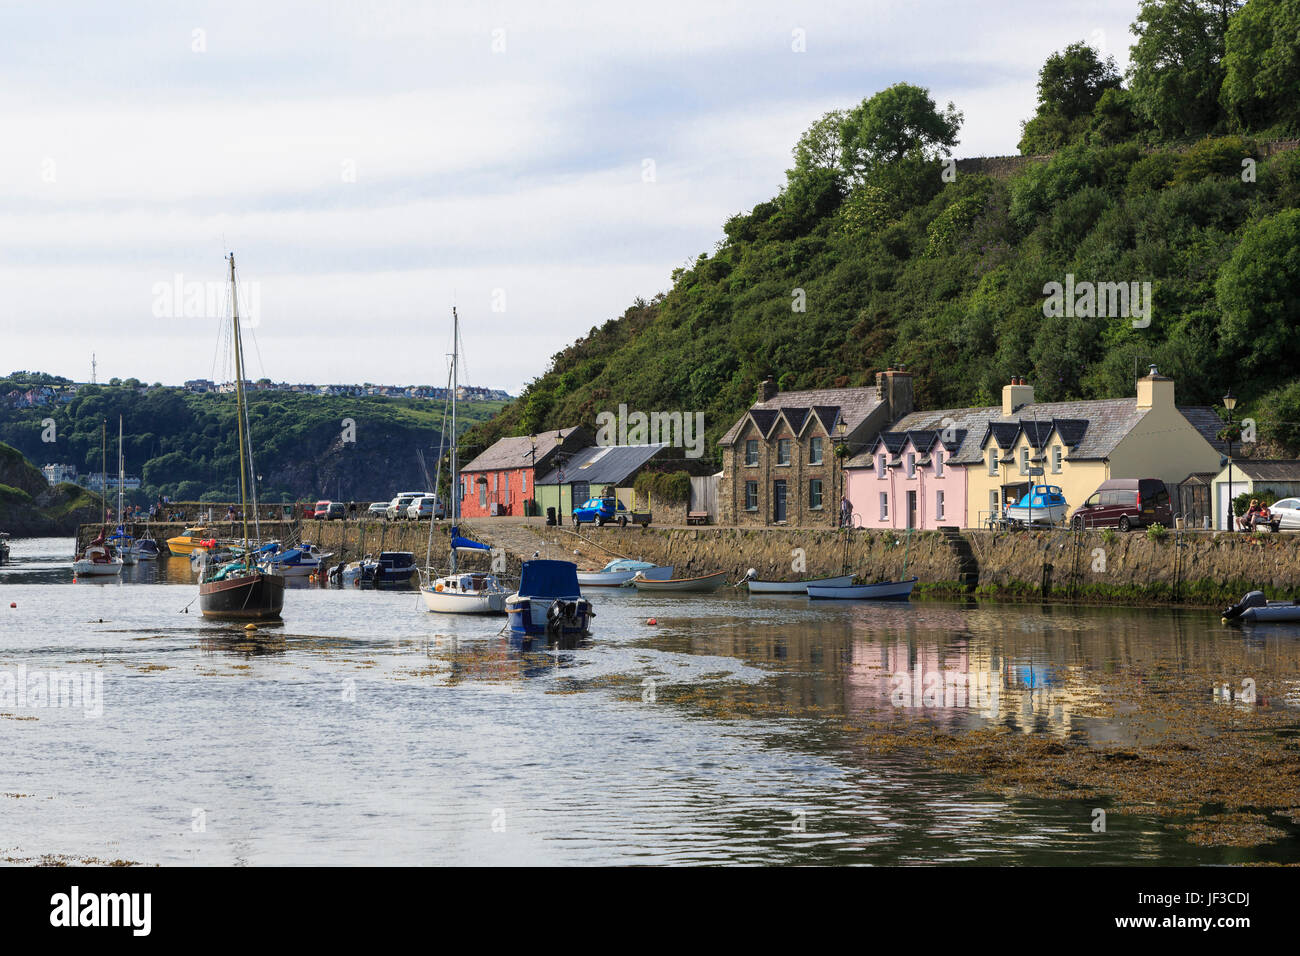 Lower Fishguard harbour, Pembrokeshire, Wales, UK. - Stock Image